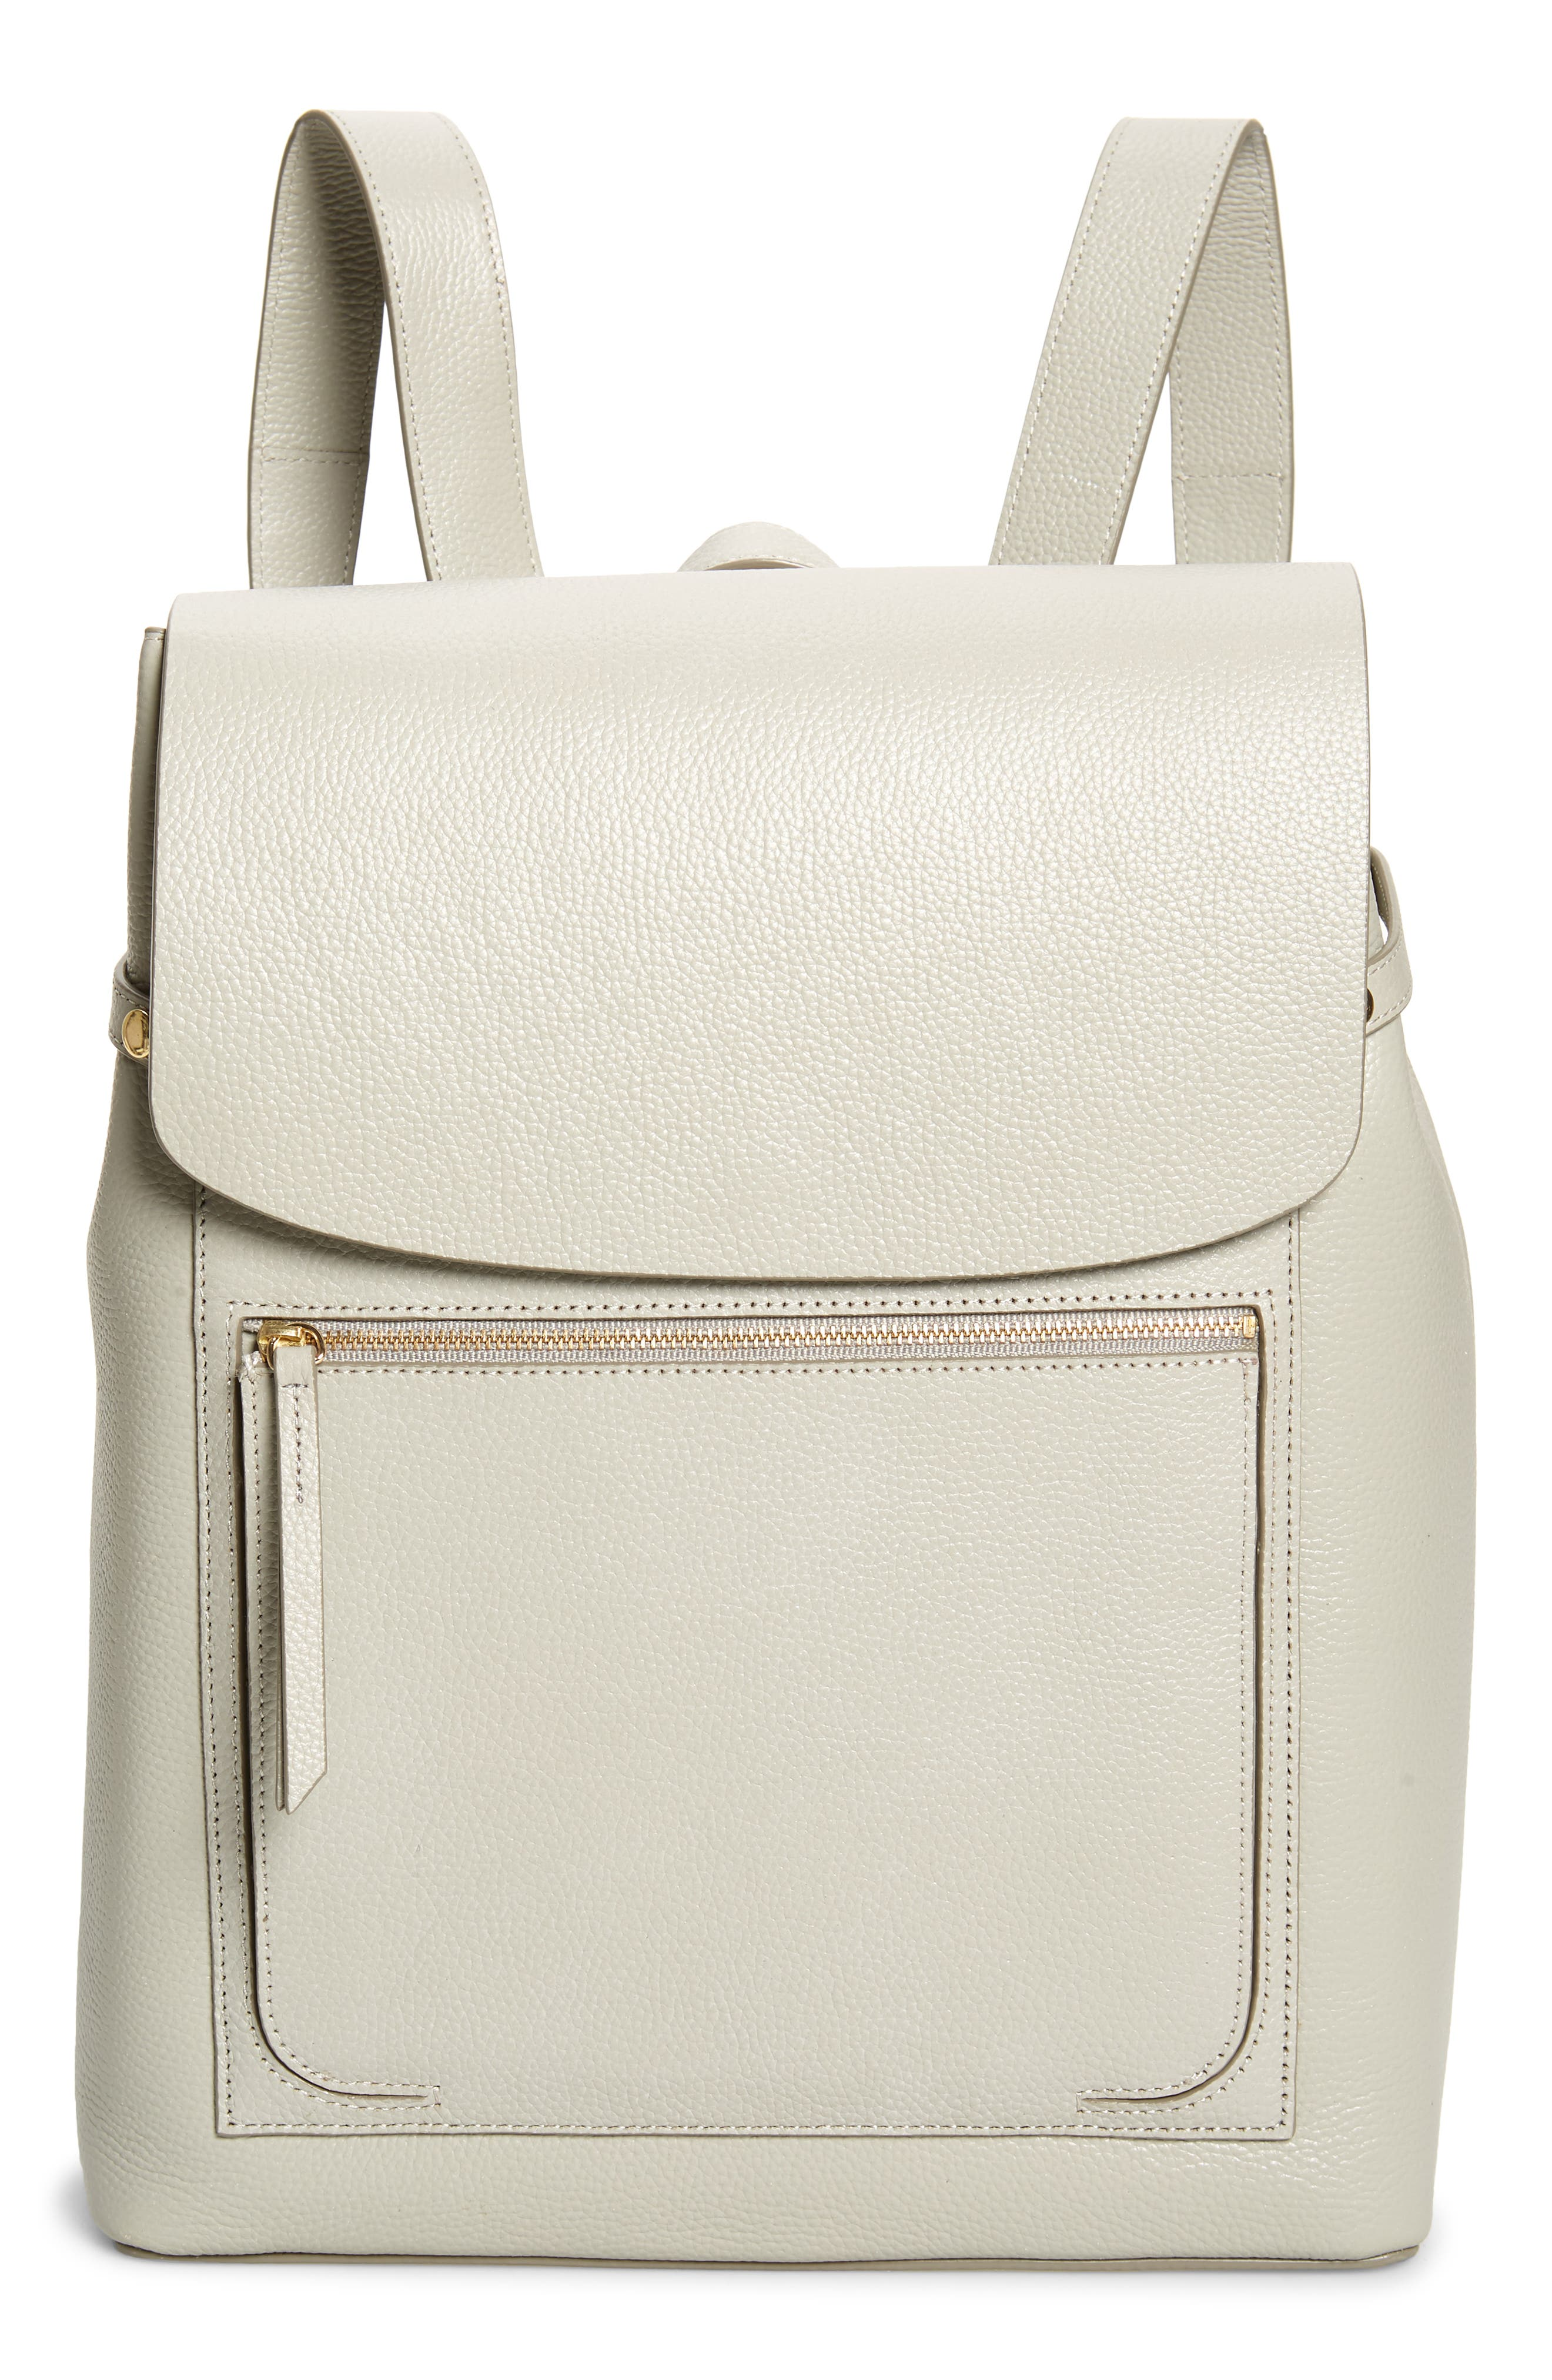 Richly grained calfskin leather defines a chic backpack in a contemporary design with adjustable shoulder straps and exposed zipper hardware. Style Name: Nordstrom Ballard Calfskin Leather Backpack. Style Number: 6015824. Available in stores.